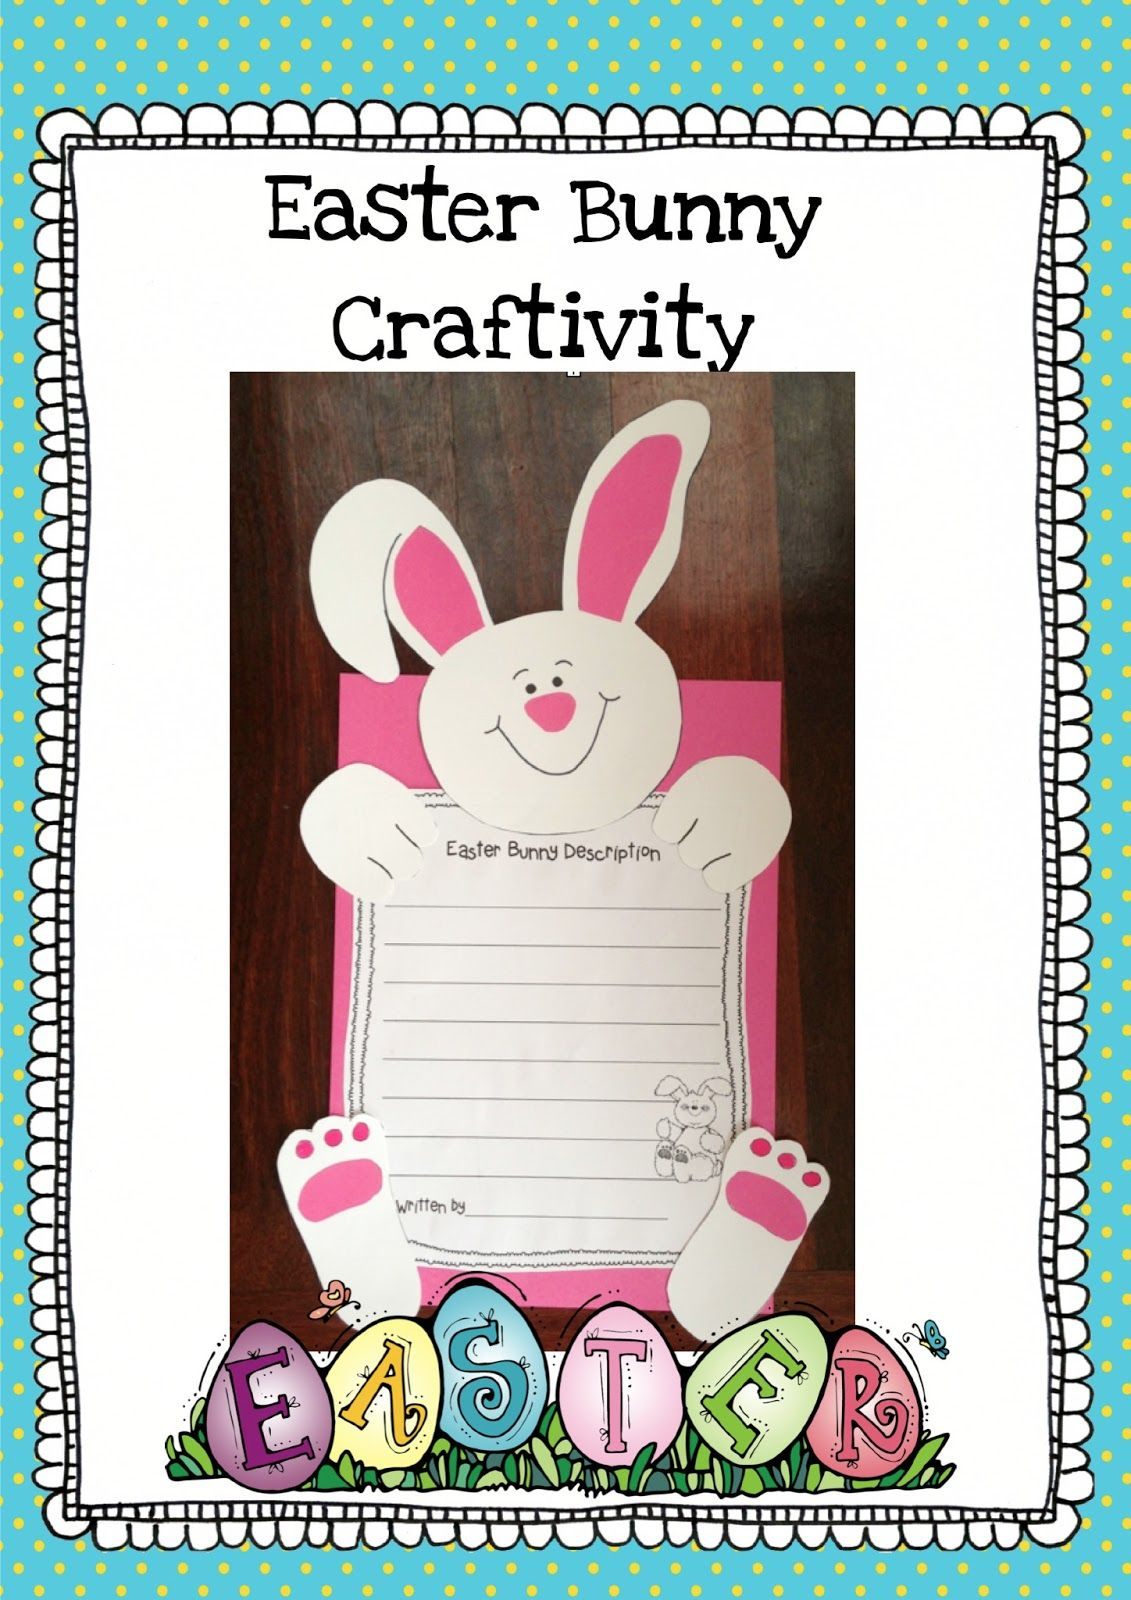 Cute Easter Bunny Craftivity